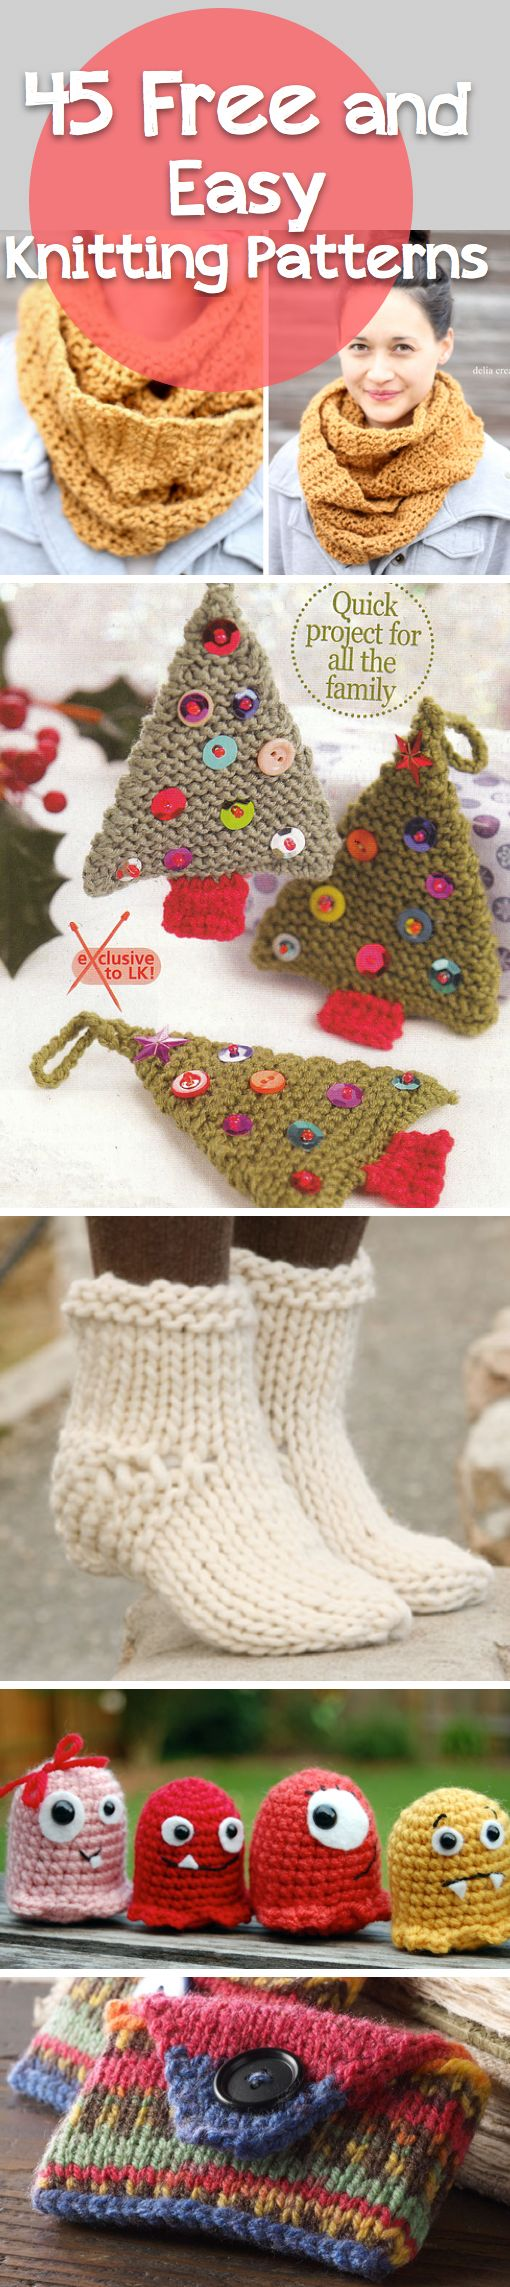 17 Best ideas about Christmas Knitting on Pinterest Knit christmas ornament...